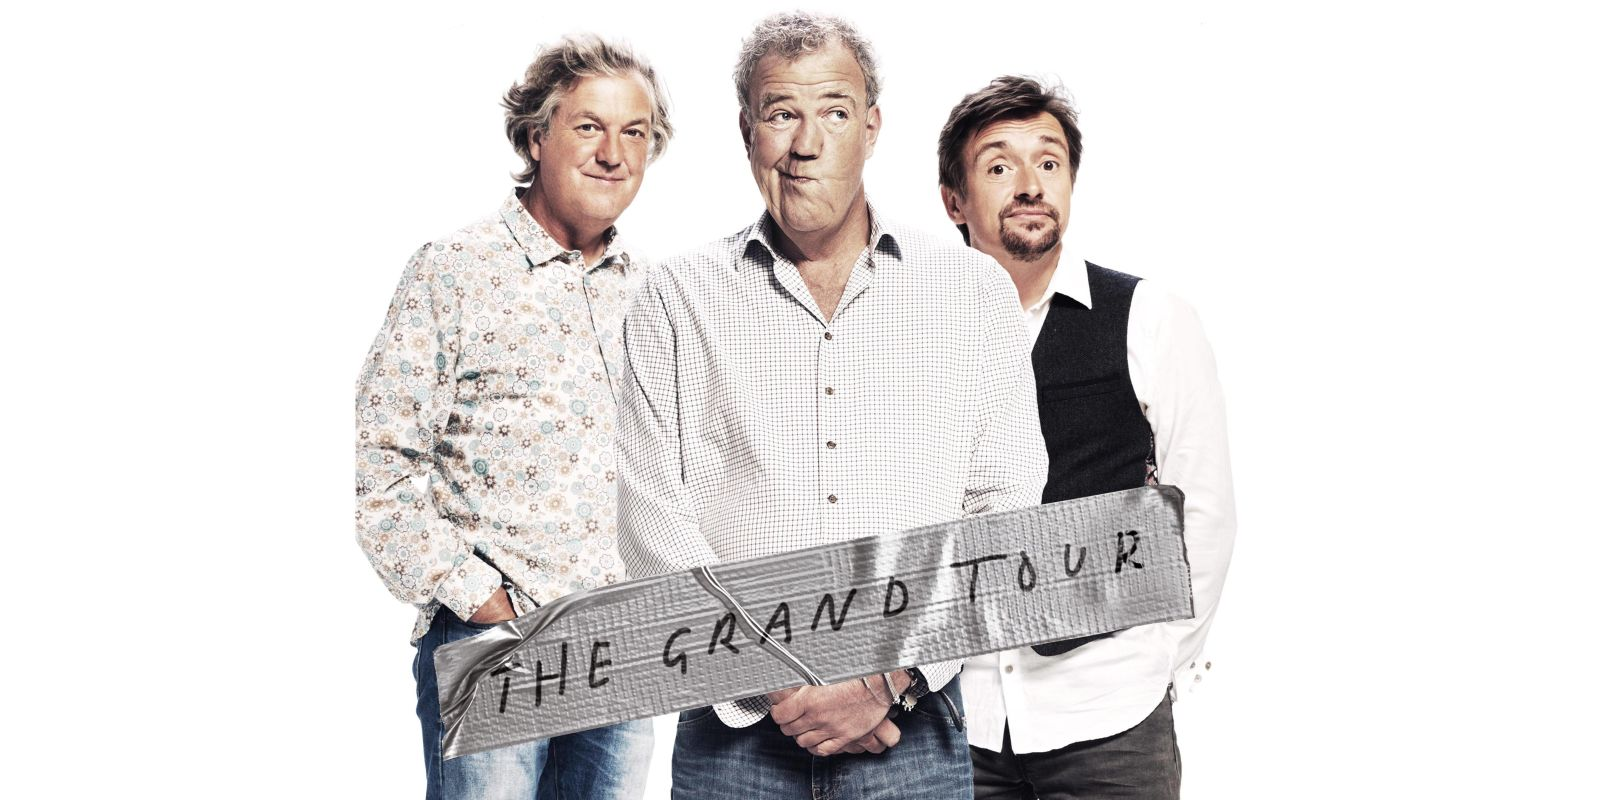 When does the Grand Tour start? Release date and details on Jeremy Clarkson's Amazon Prime show